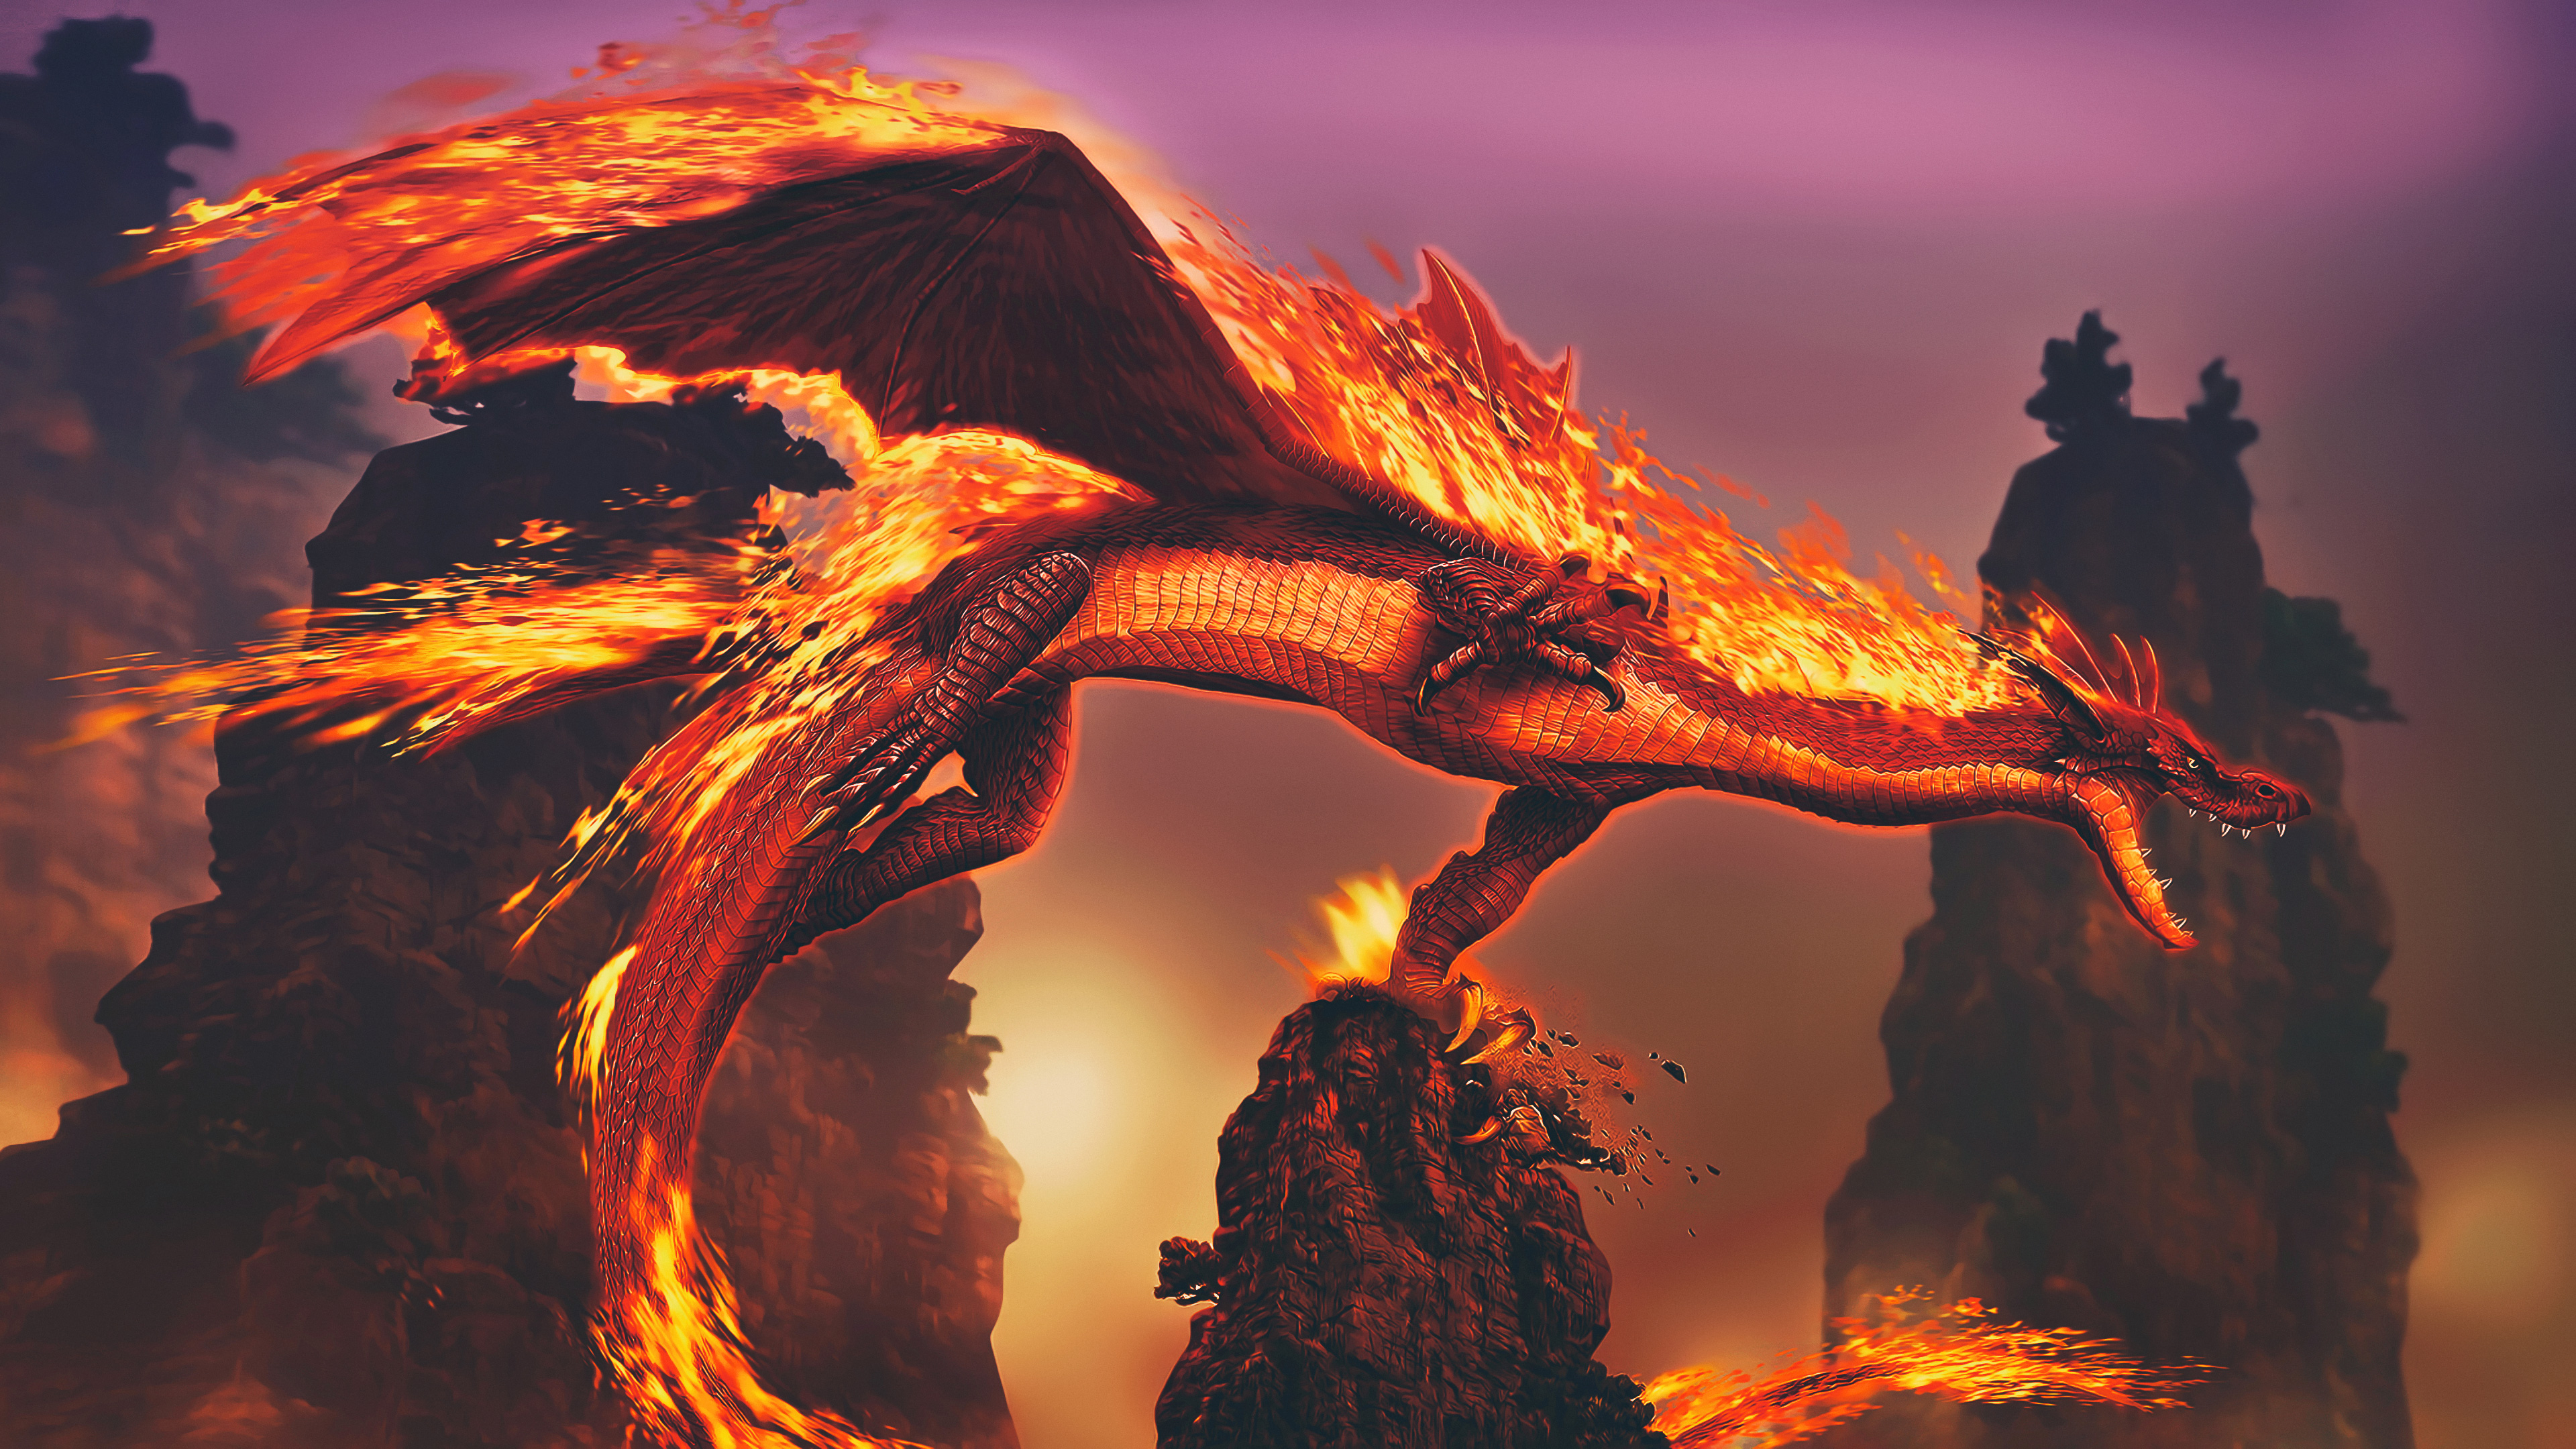 Dragon Fire 4k Hd Artist 4k Wallpapers Images Backgrounds